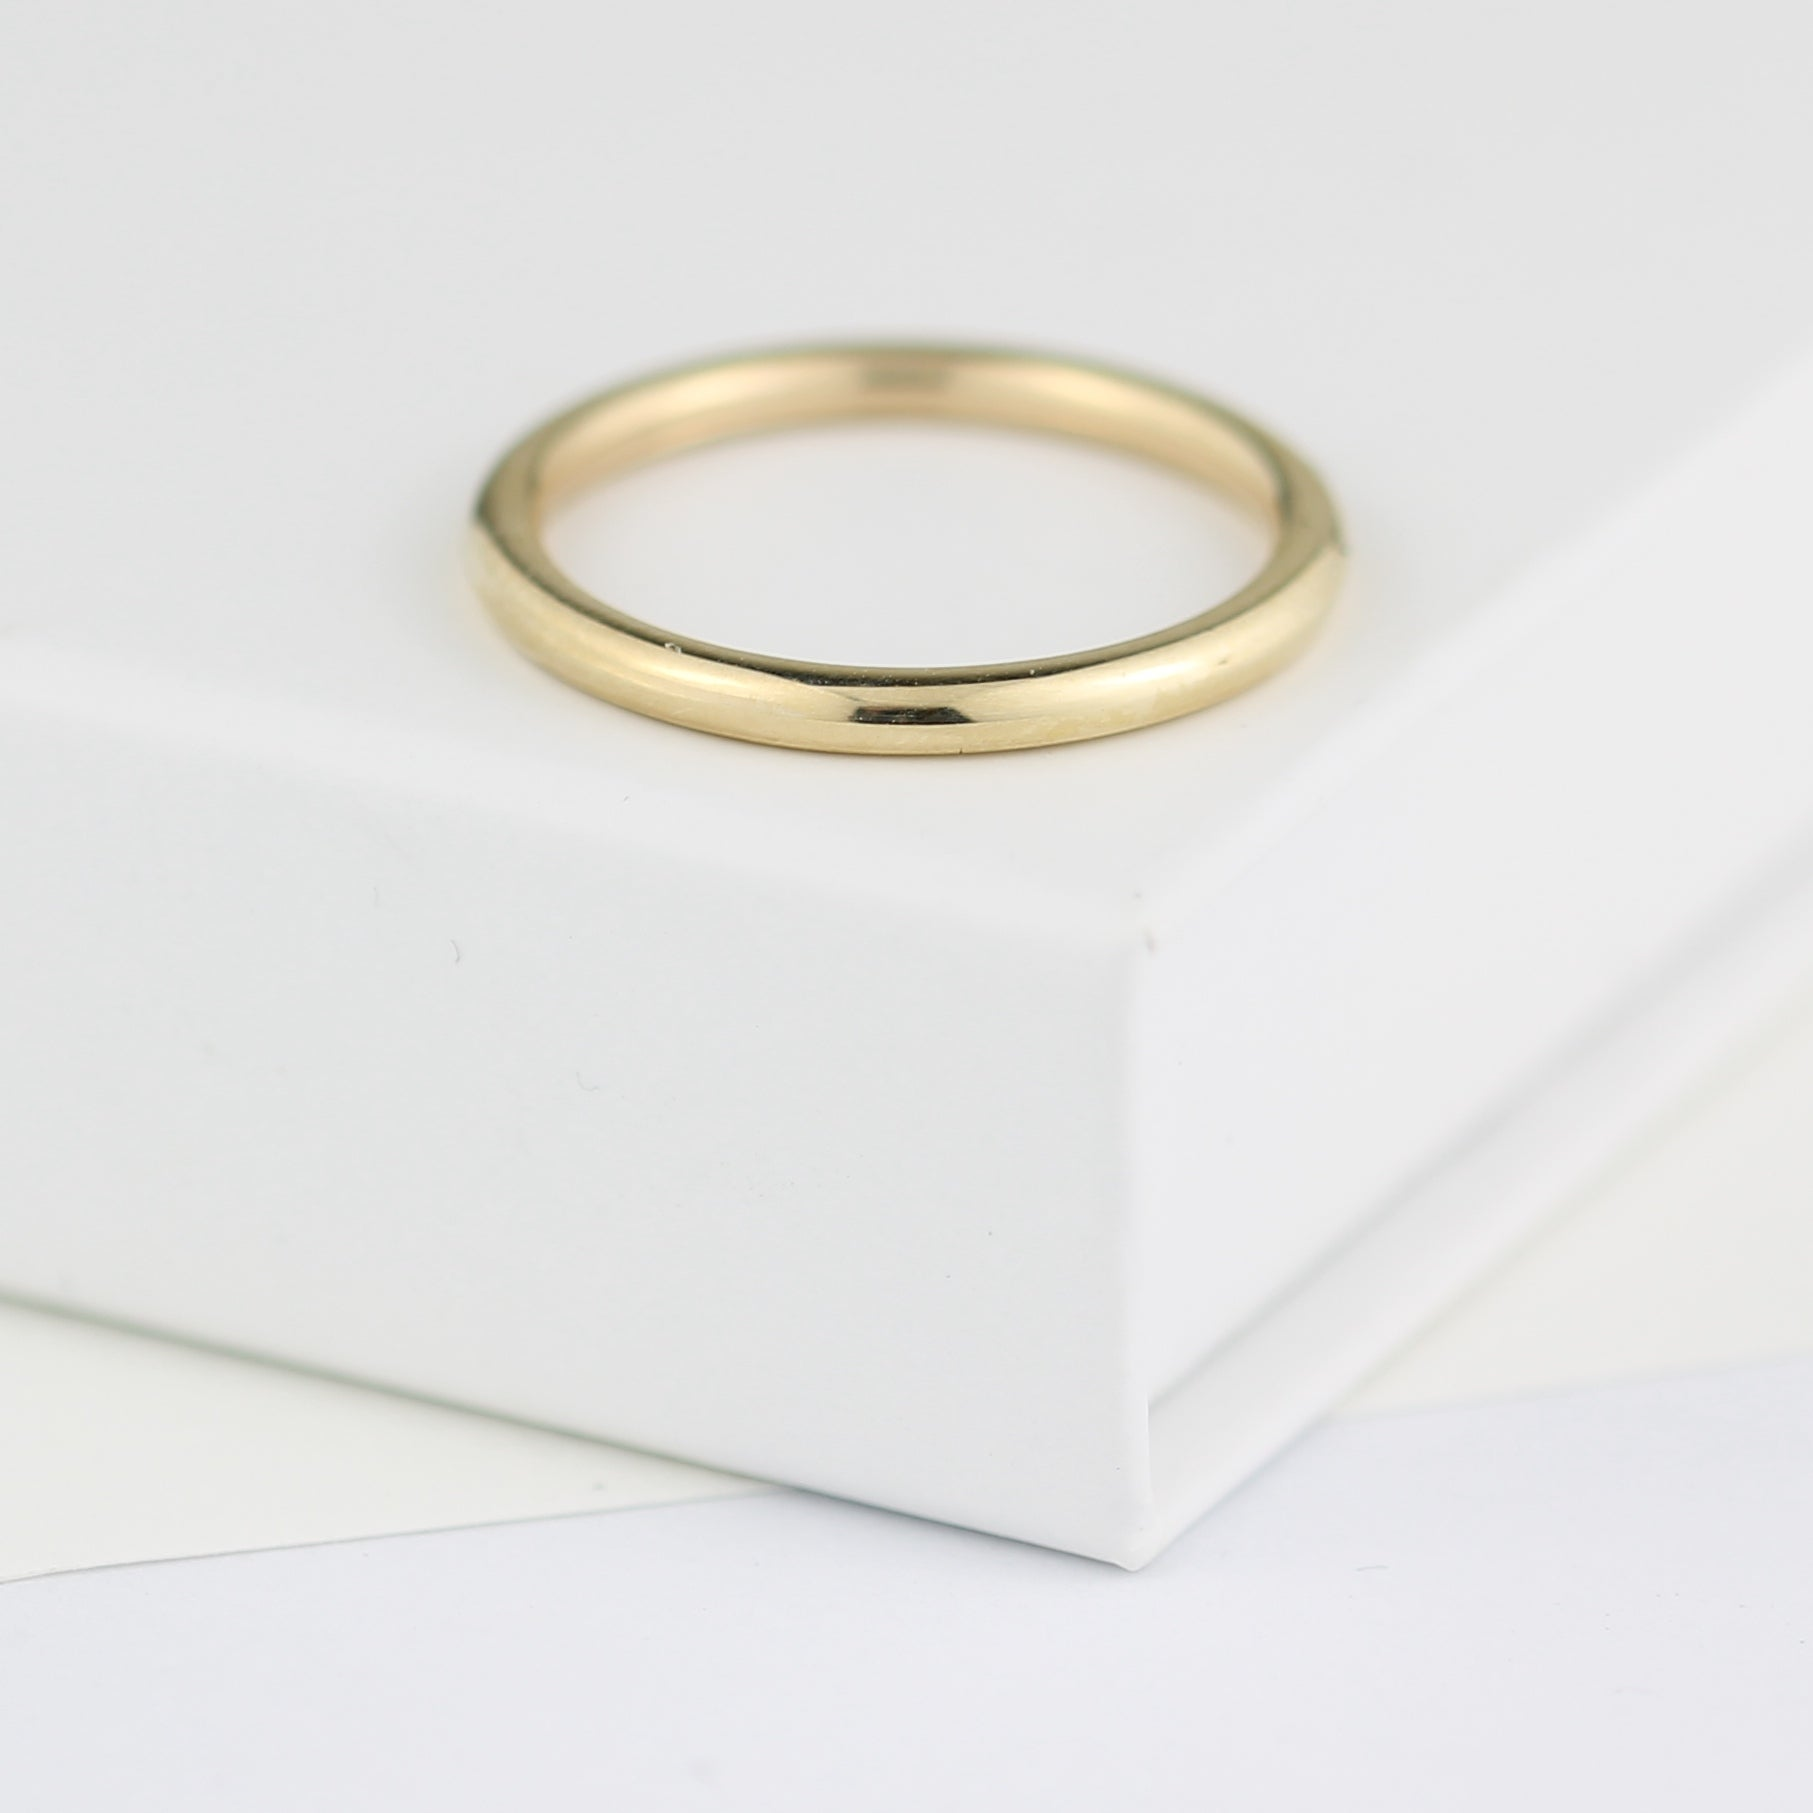 Simple Wedding Ring.Gold Ring Beautifully Simple Gold Wedding Ring 2mm Wide Wedding Ring